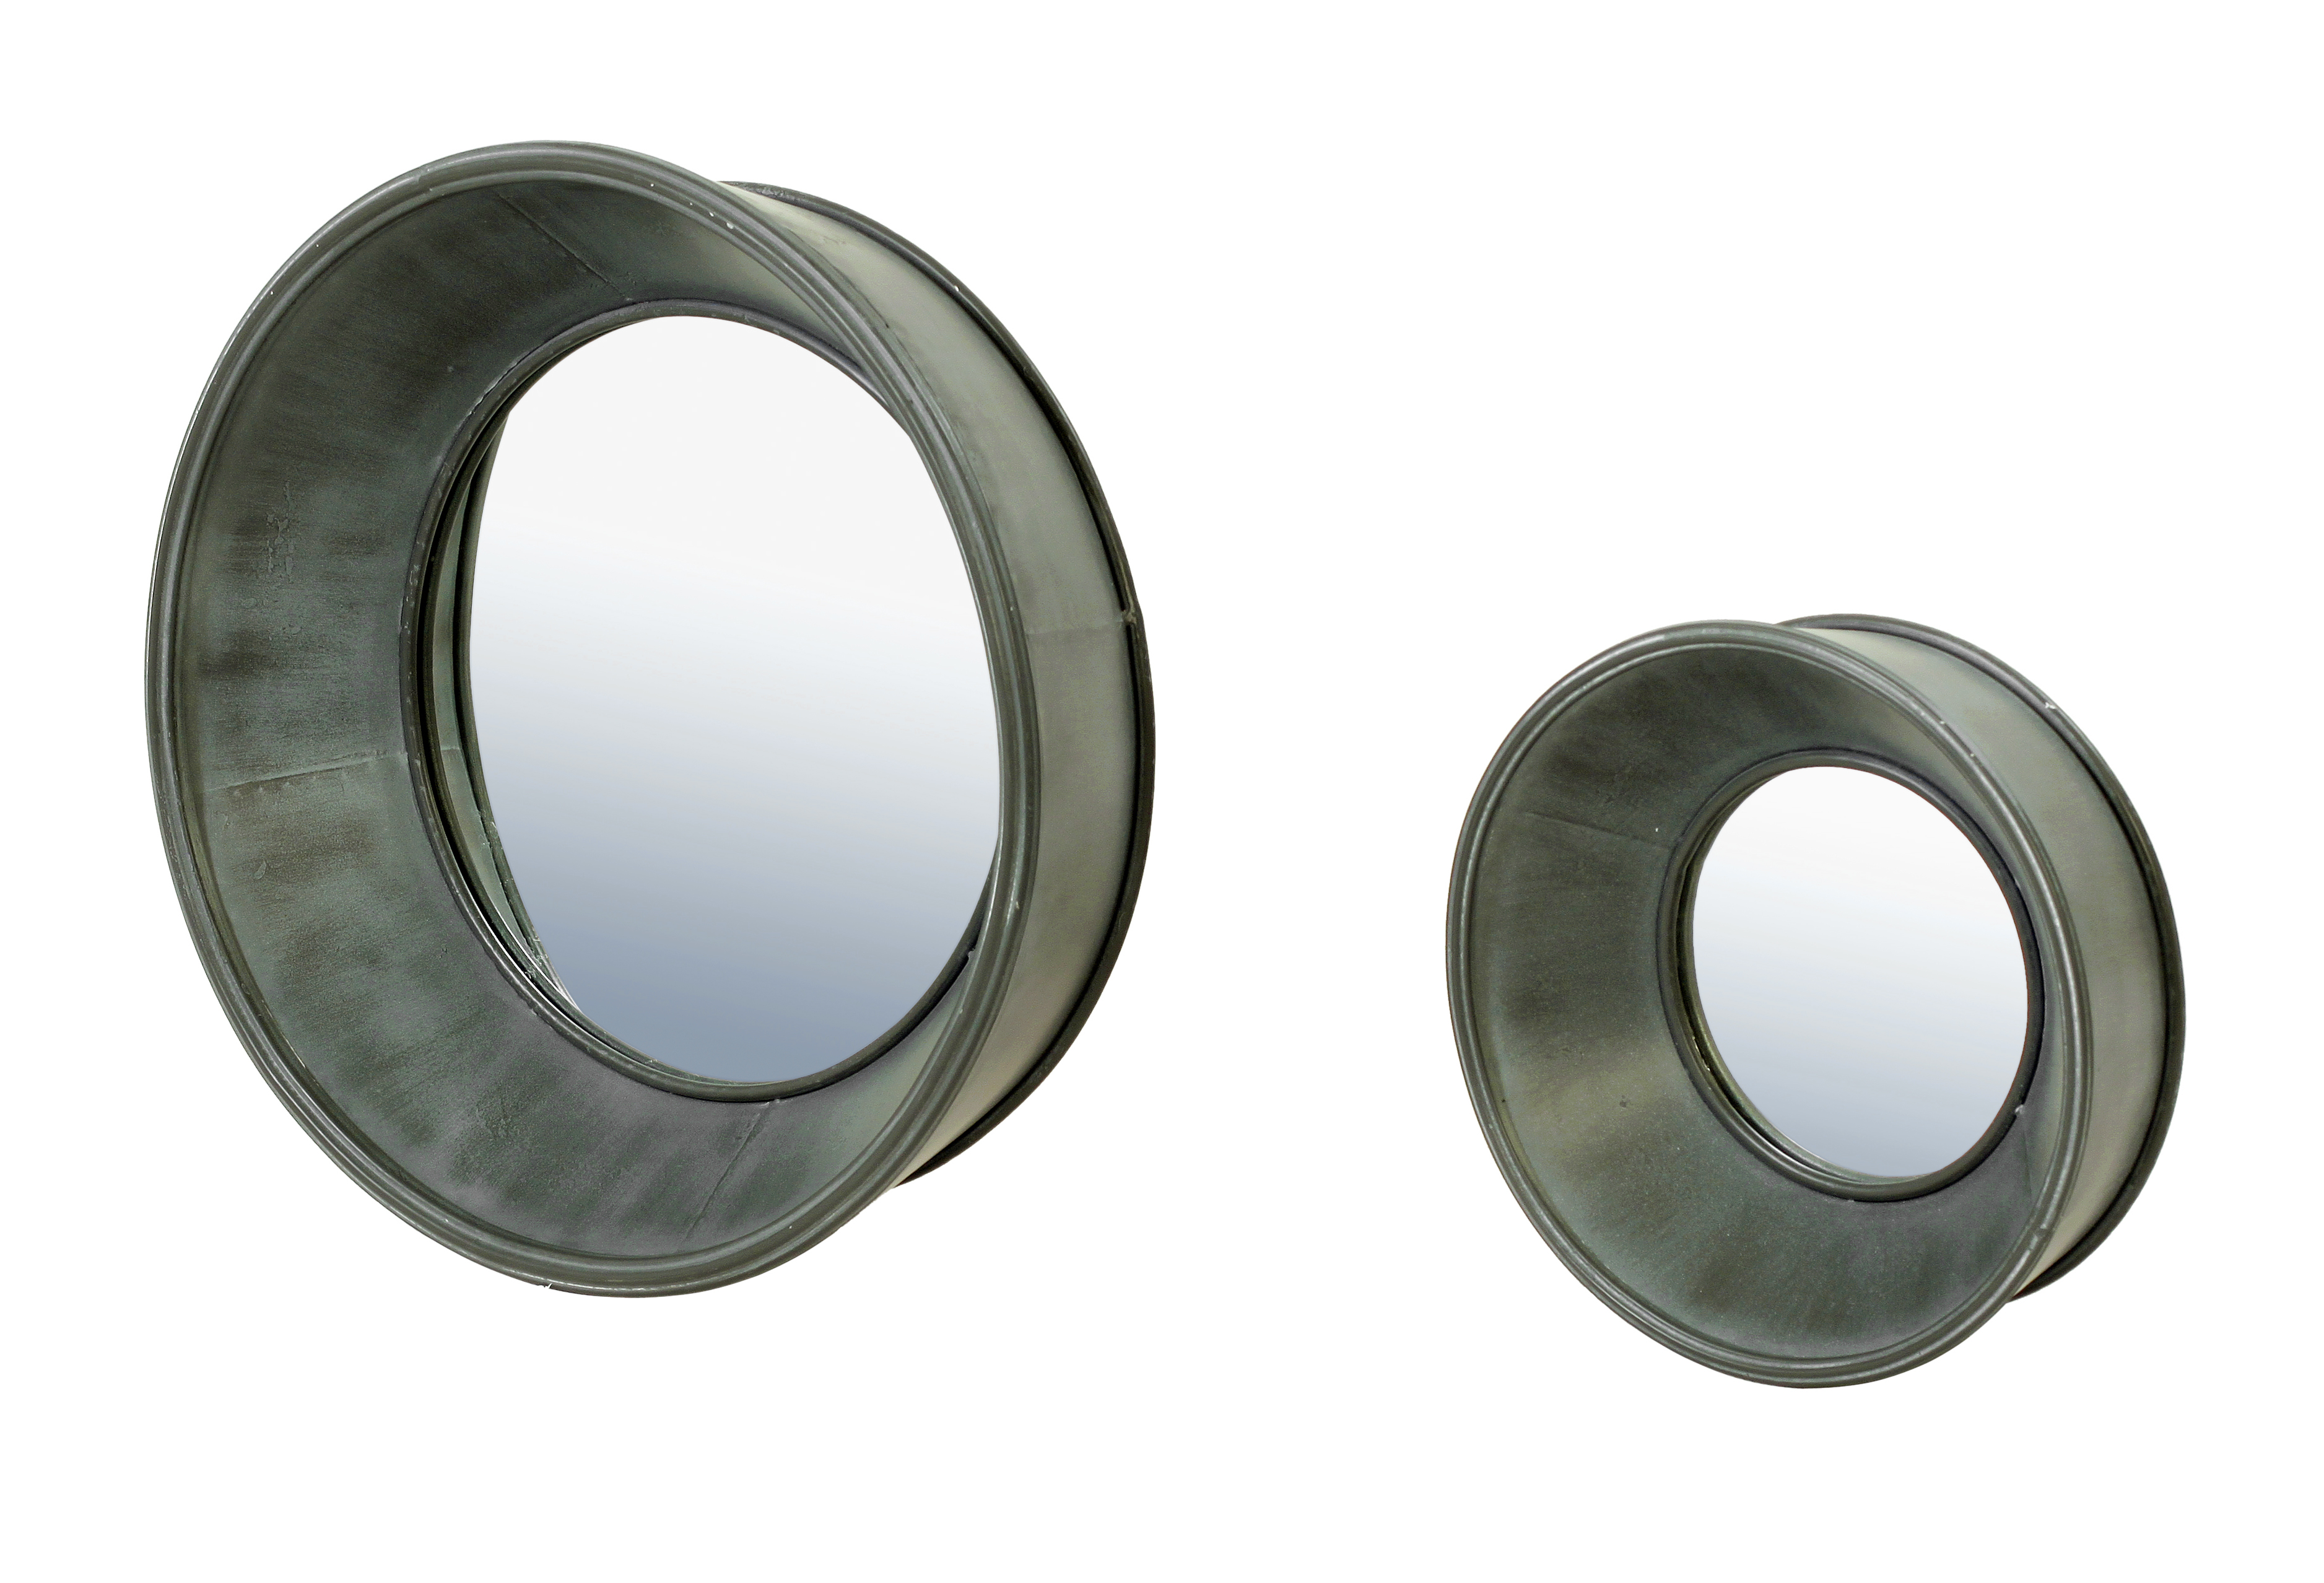 Belgian Luxe Porthole Wall Mirror Set/2 by Bassett Mirror at Alison Craig Home Furnishings